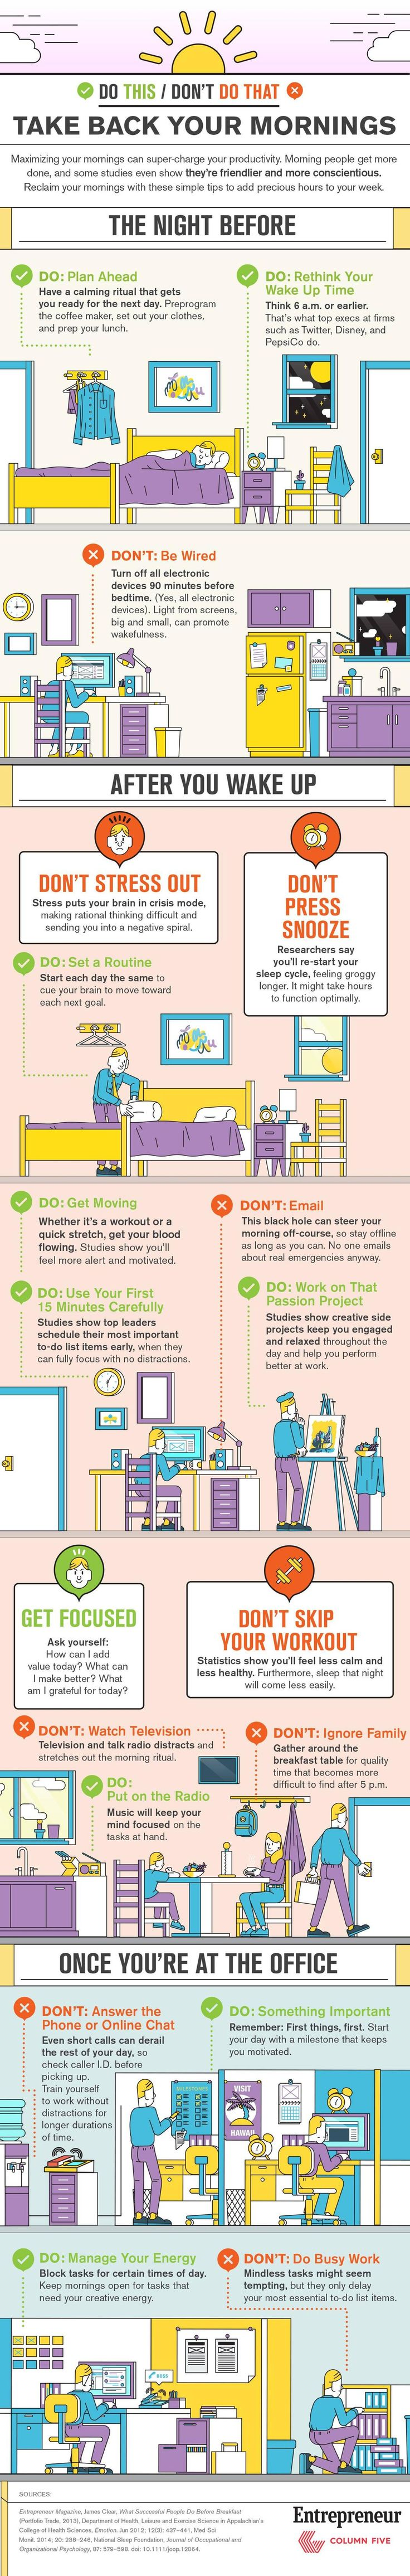 Take Back Your Mornings infographic #Health #Productivity  also can be used for sleep hygiene